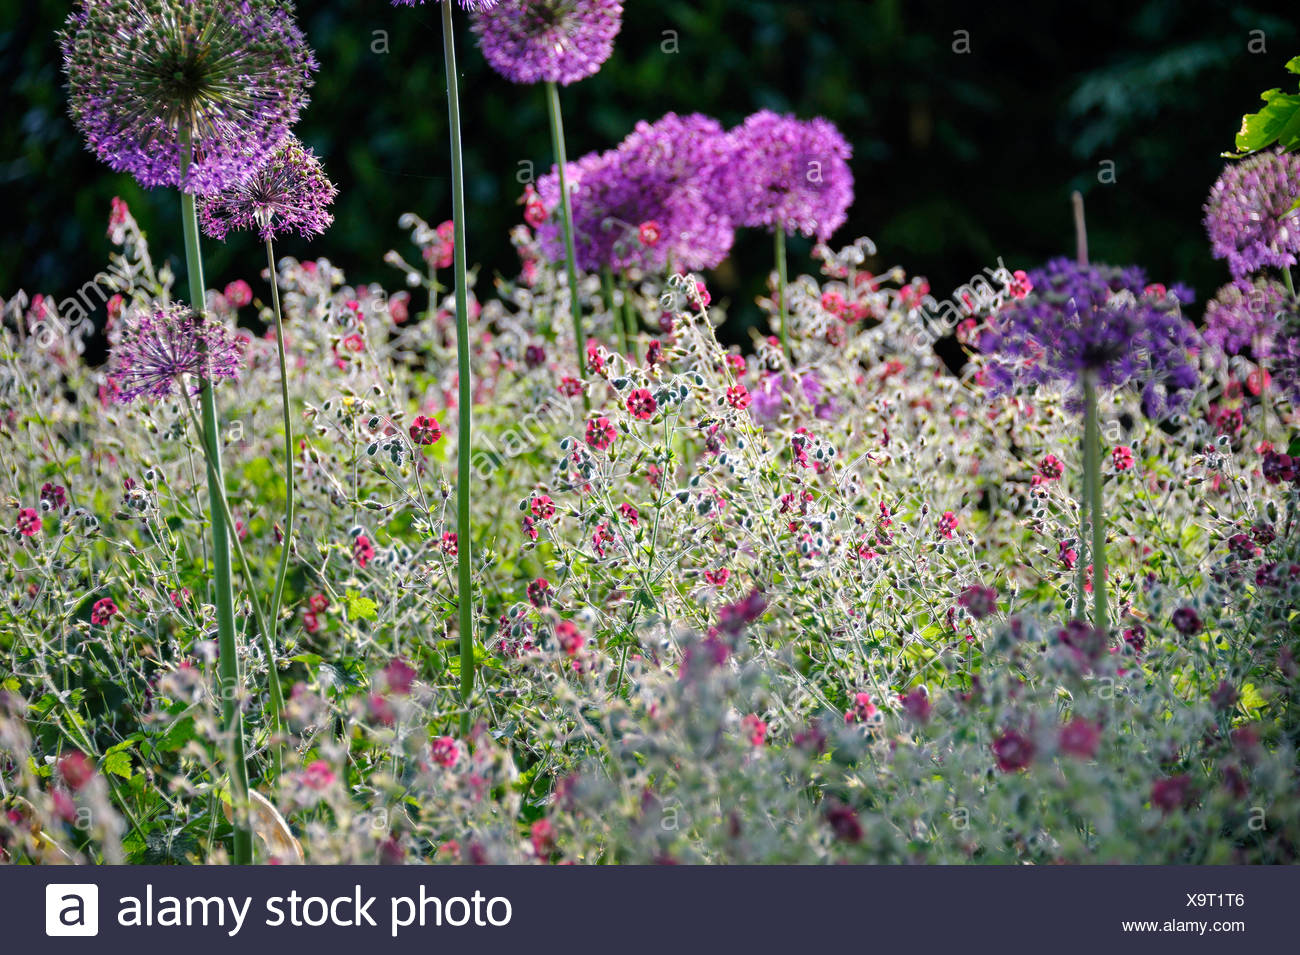 dusky cranesbill (Geranium phaeum), blooming in a flowerbed together with Allium aflatunense, Germany Stock Photo